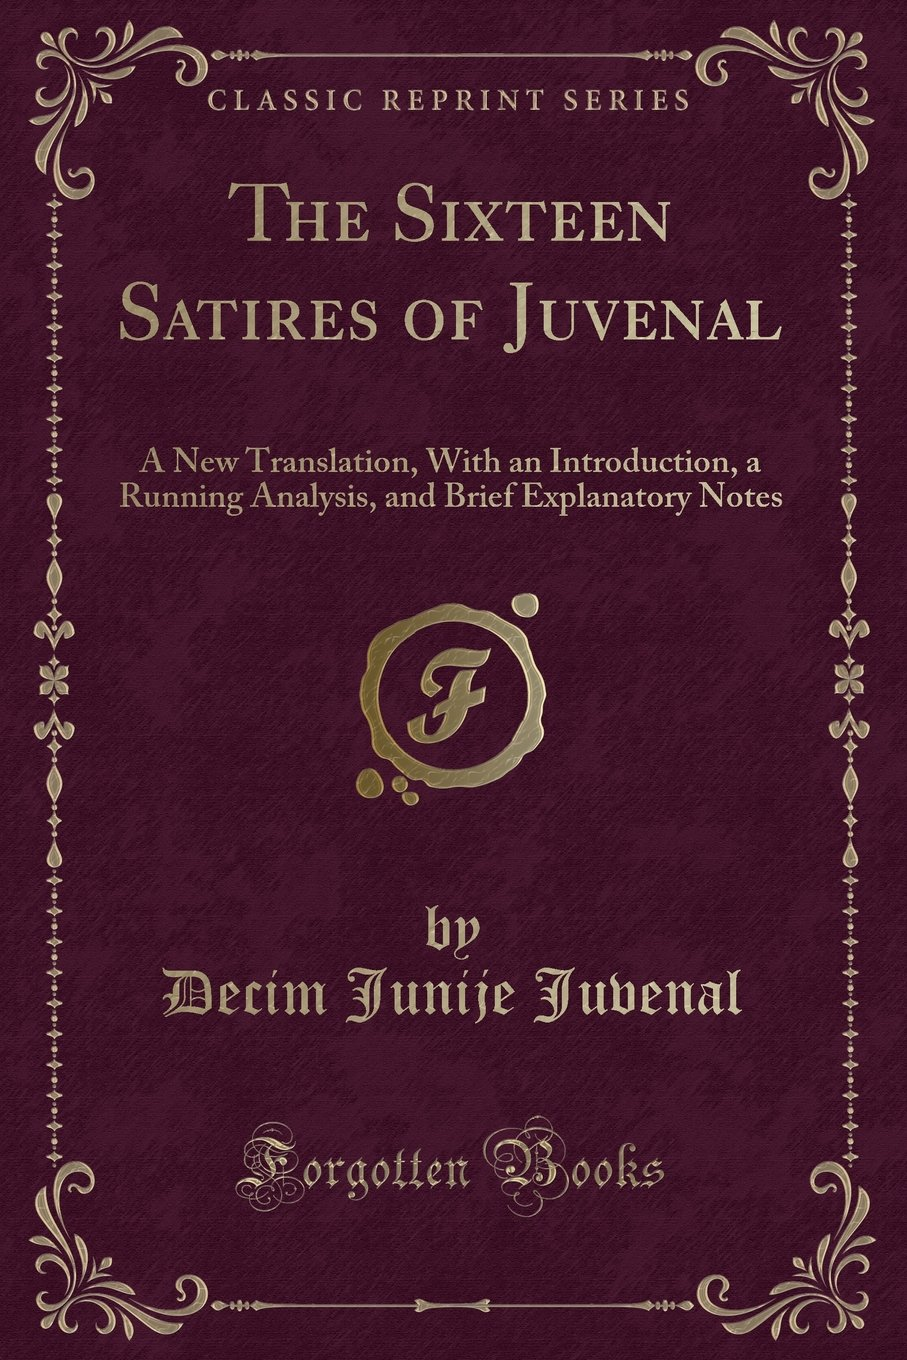 Download The Sixteen Satires of Juvenal: A New Translation, With an Introduction, a Running Analysis, and Brief Explanatory Notes (Classic Reprint) ebook